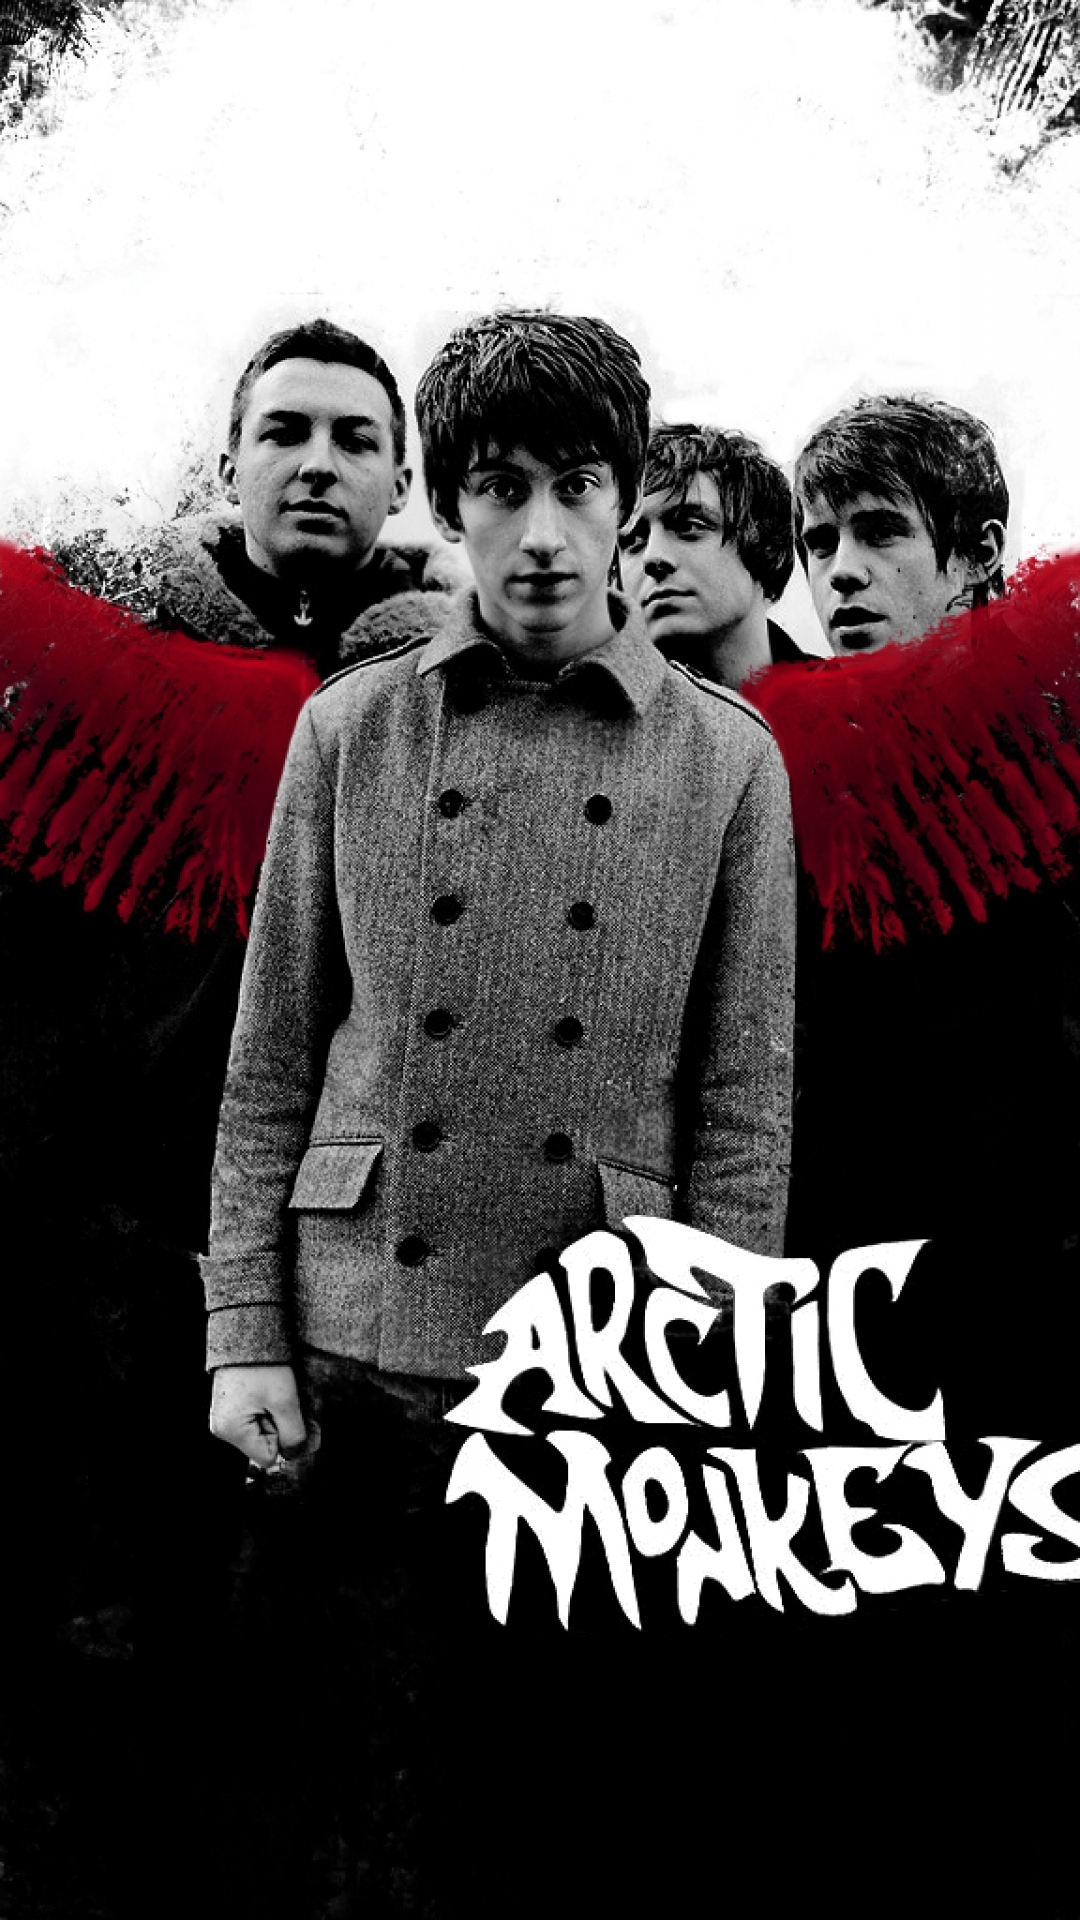 arctic monkeys iphone wallpaper arctic monkeys best htc one wallpapers free and easy to 13499